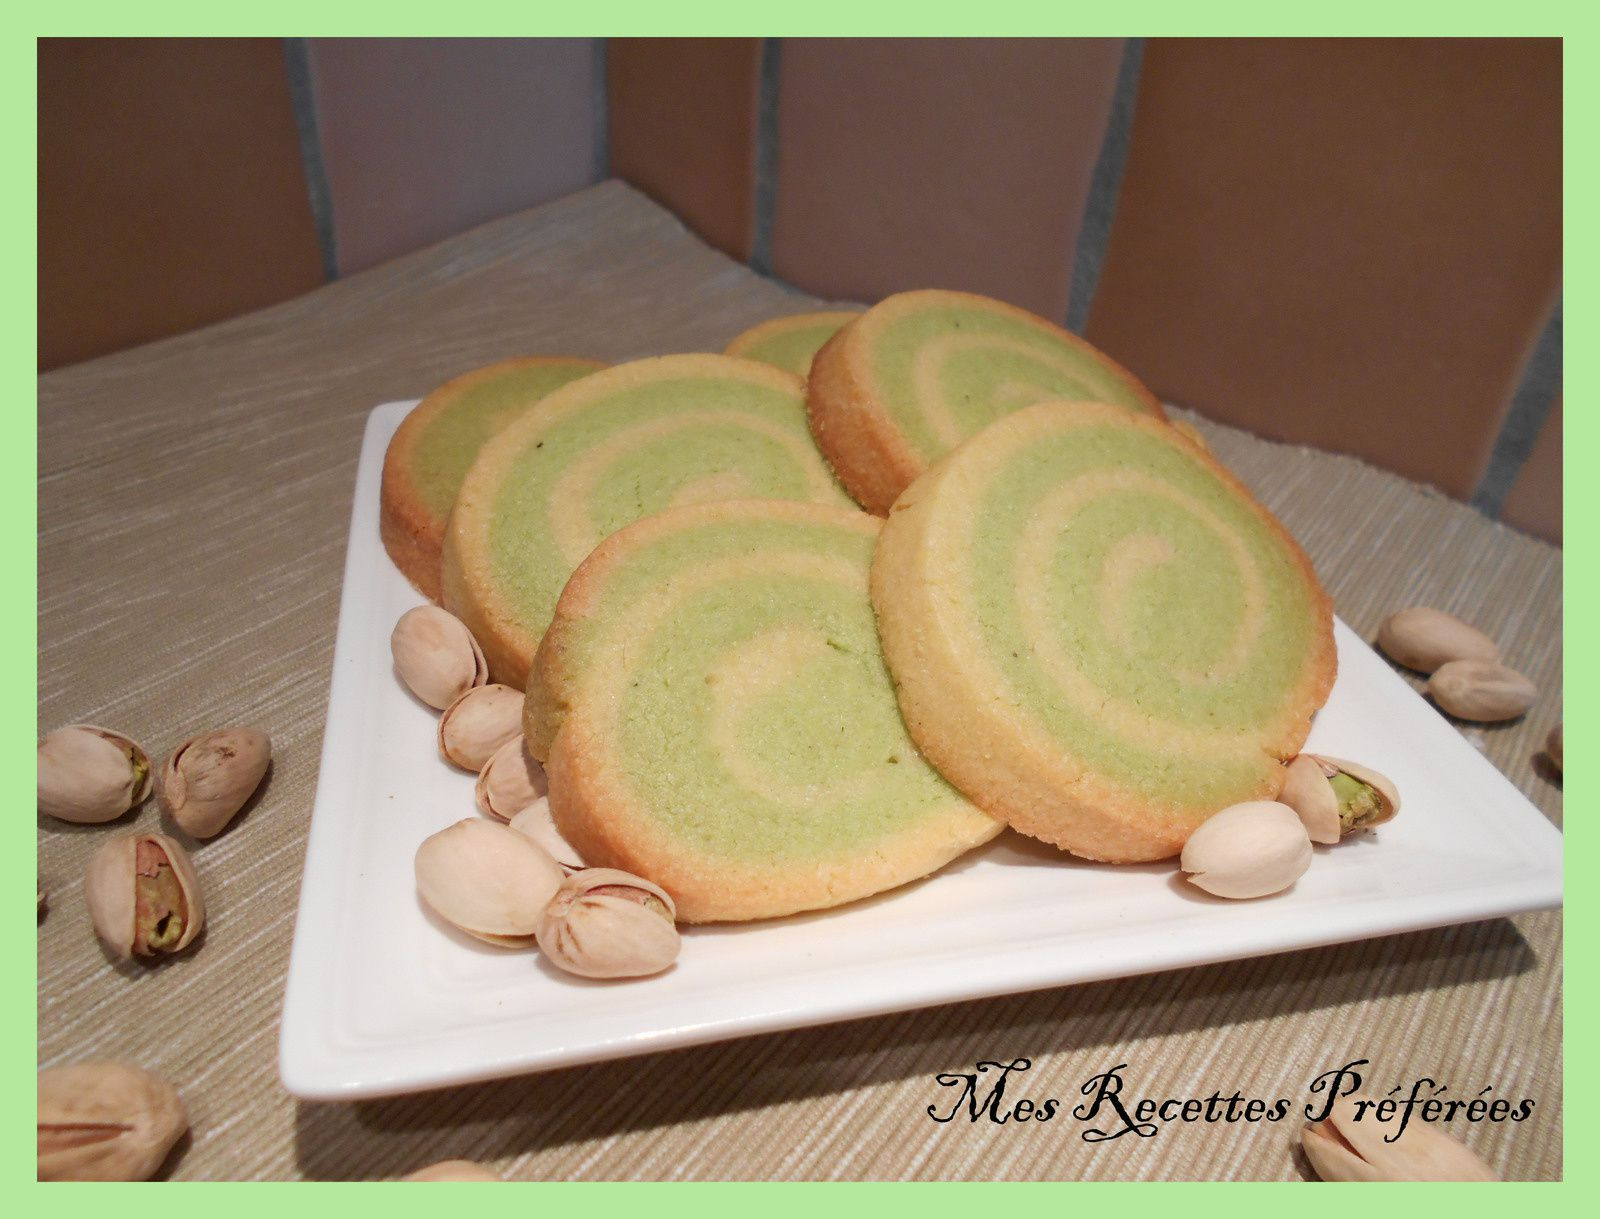 Mes biscuits home made